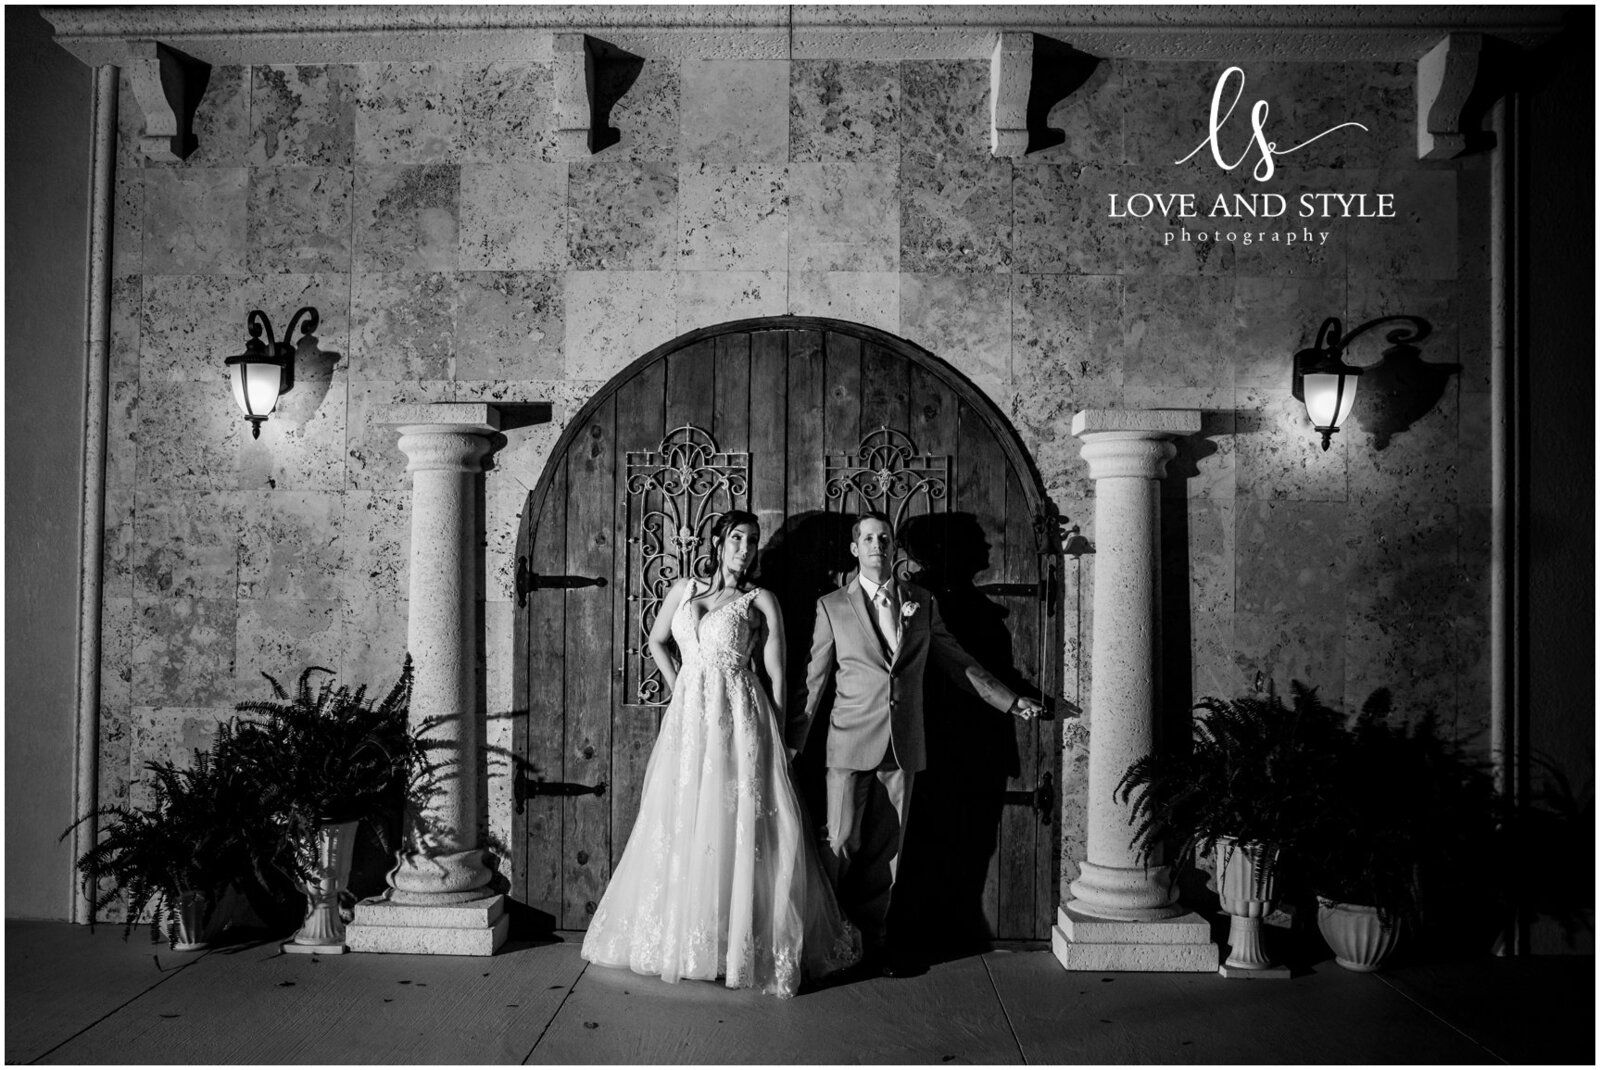 A wedding at Baker's Ranch, Parrish, FL